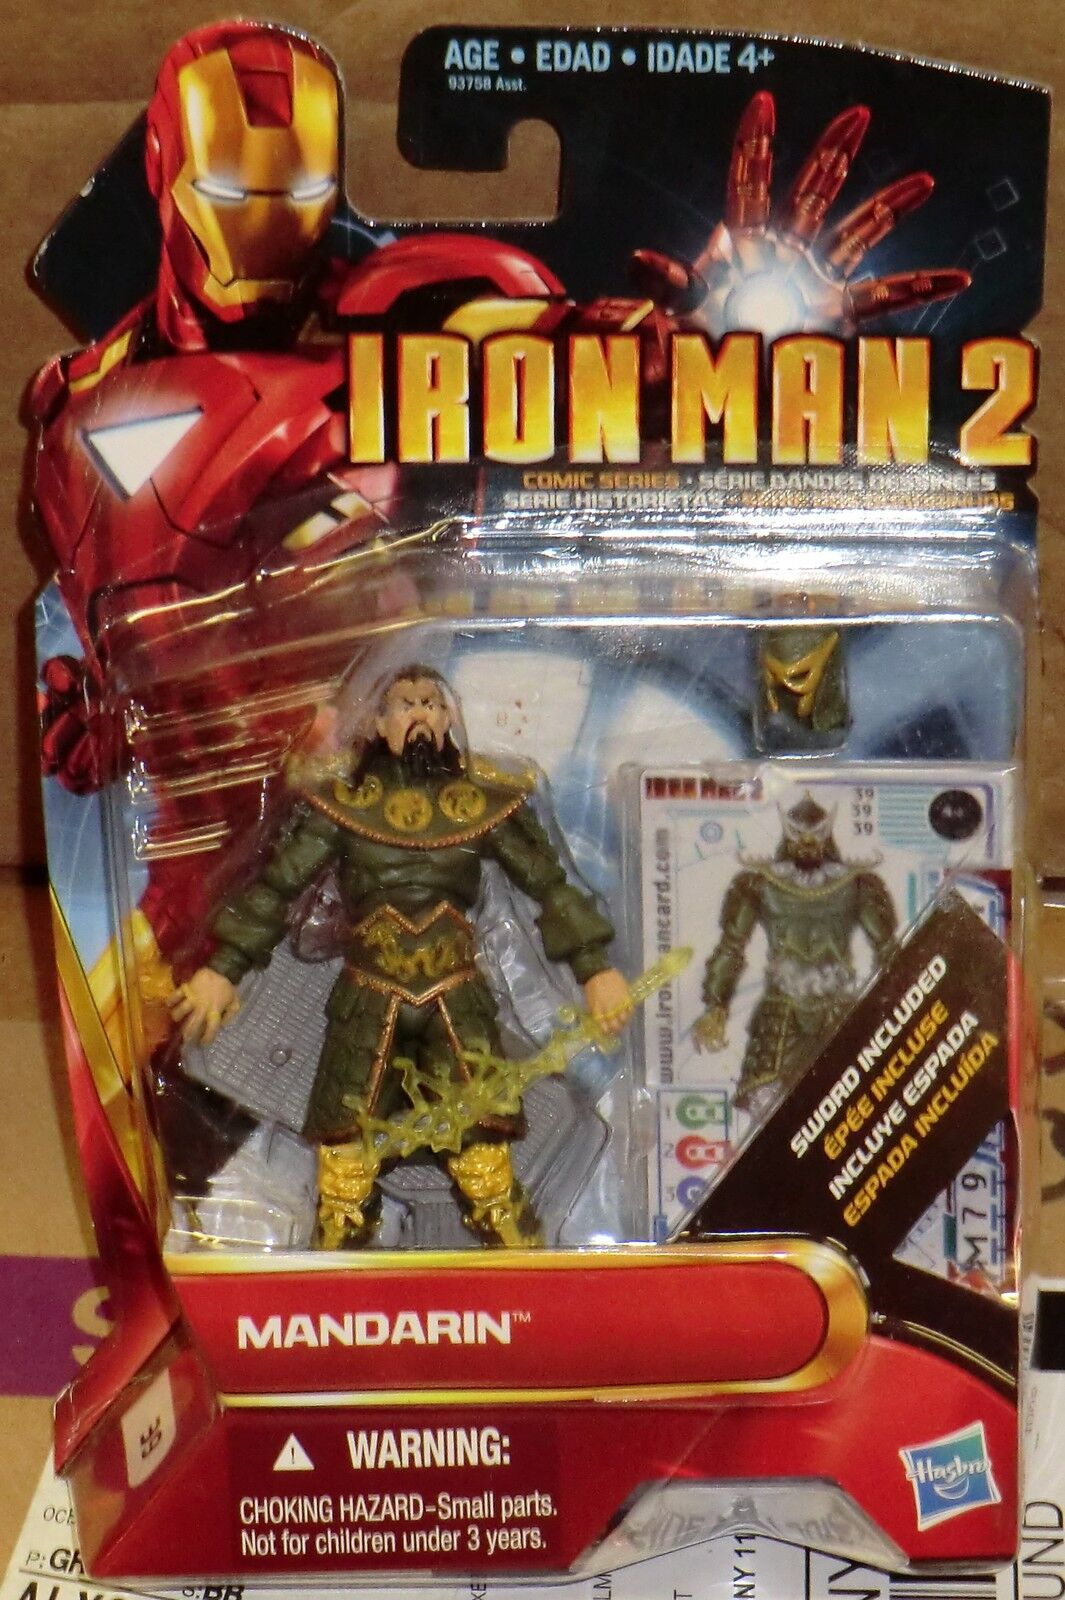 MARVEL MARVEL MARVEL IRON MAN 2  MANDARIN  REGULAR & TRI-LINGUAL 2 FIGURES MOC cd07ed